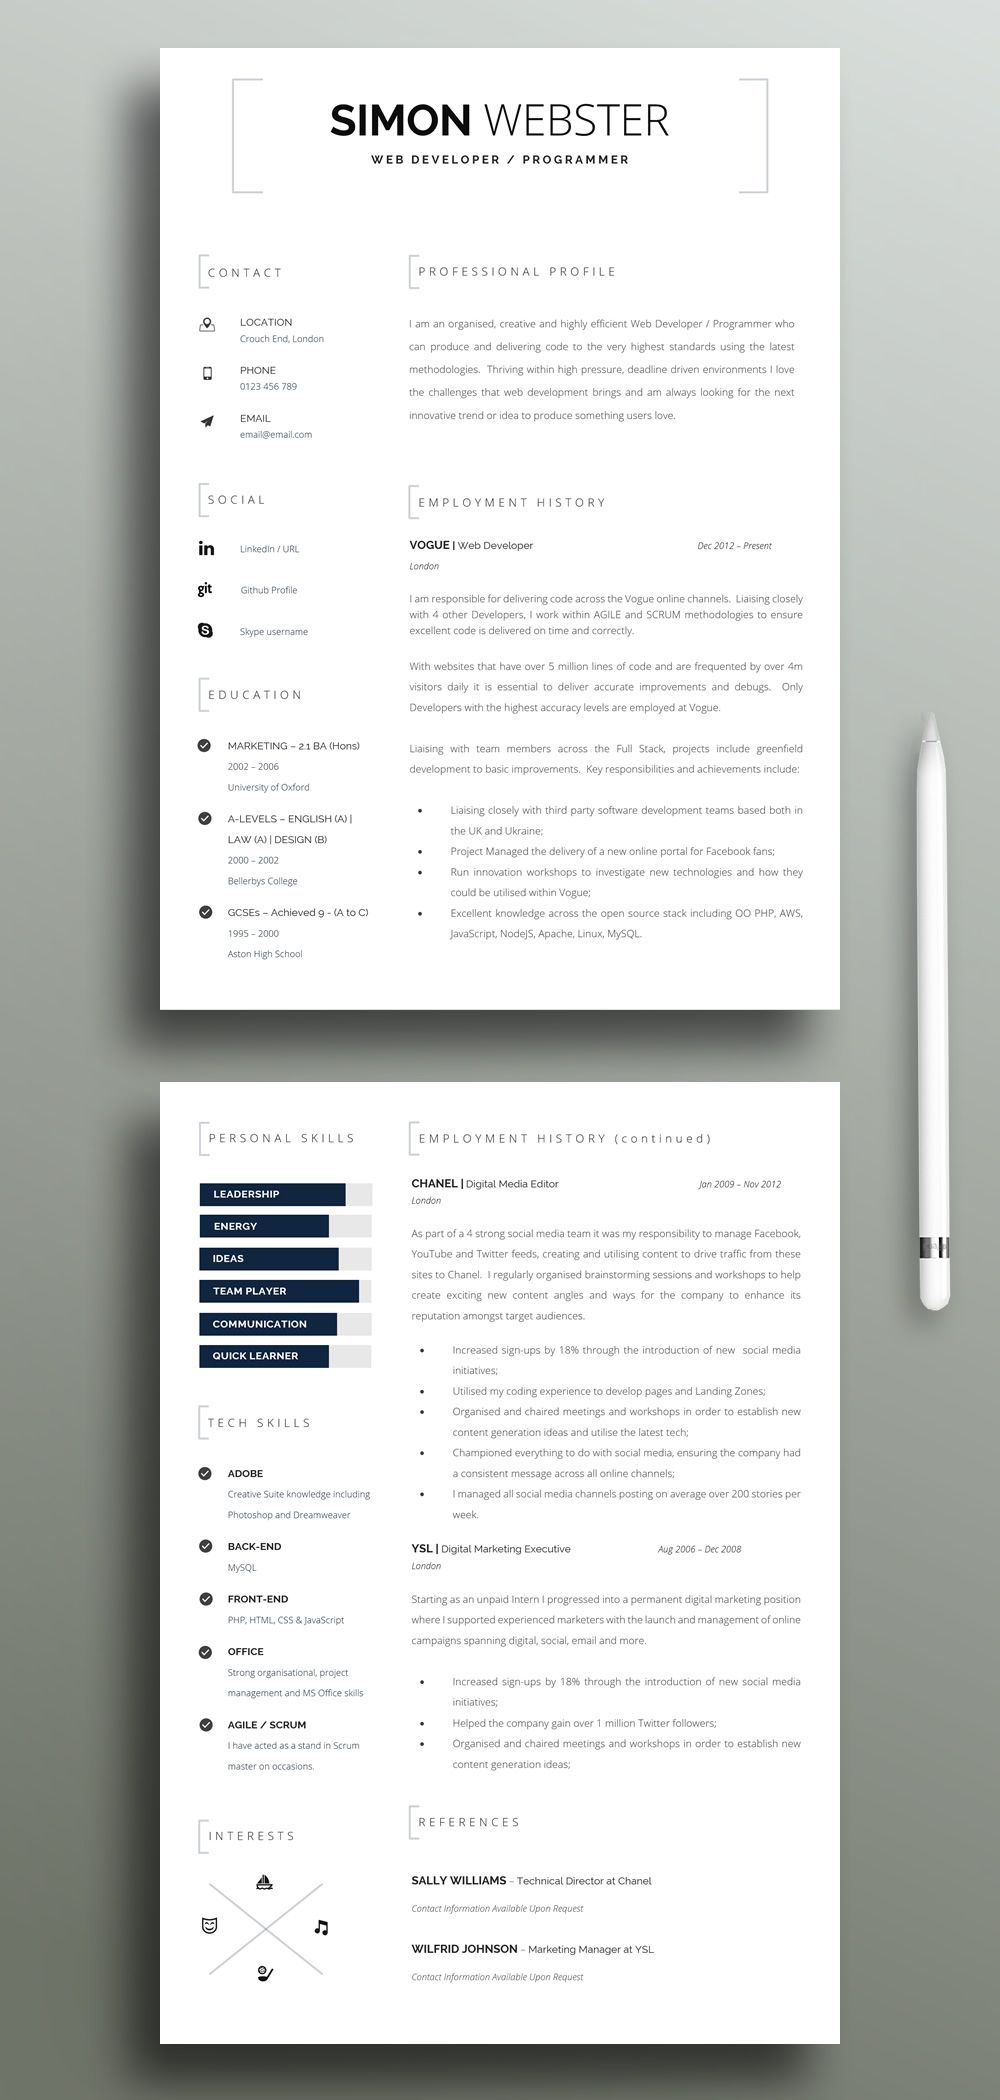 Reverse Chronological Resume with Cover Letter Template